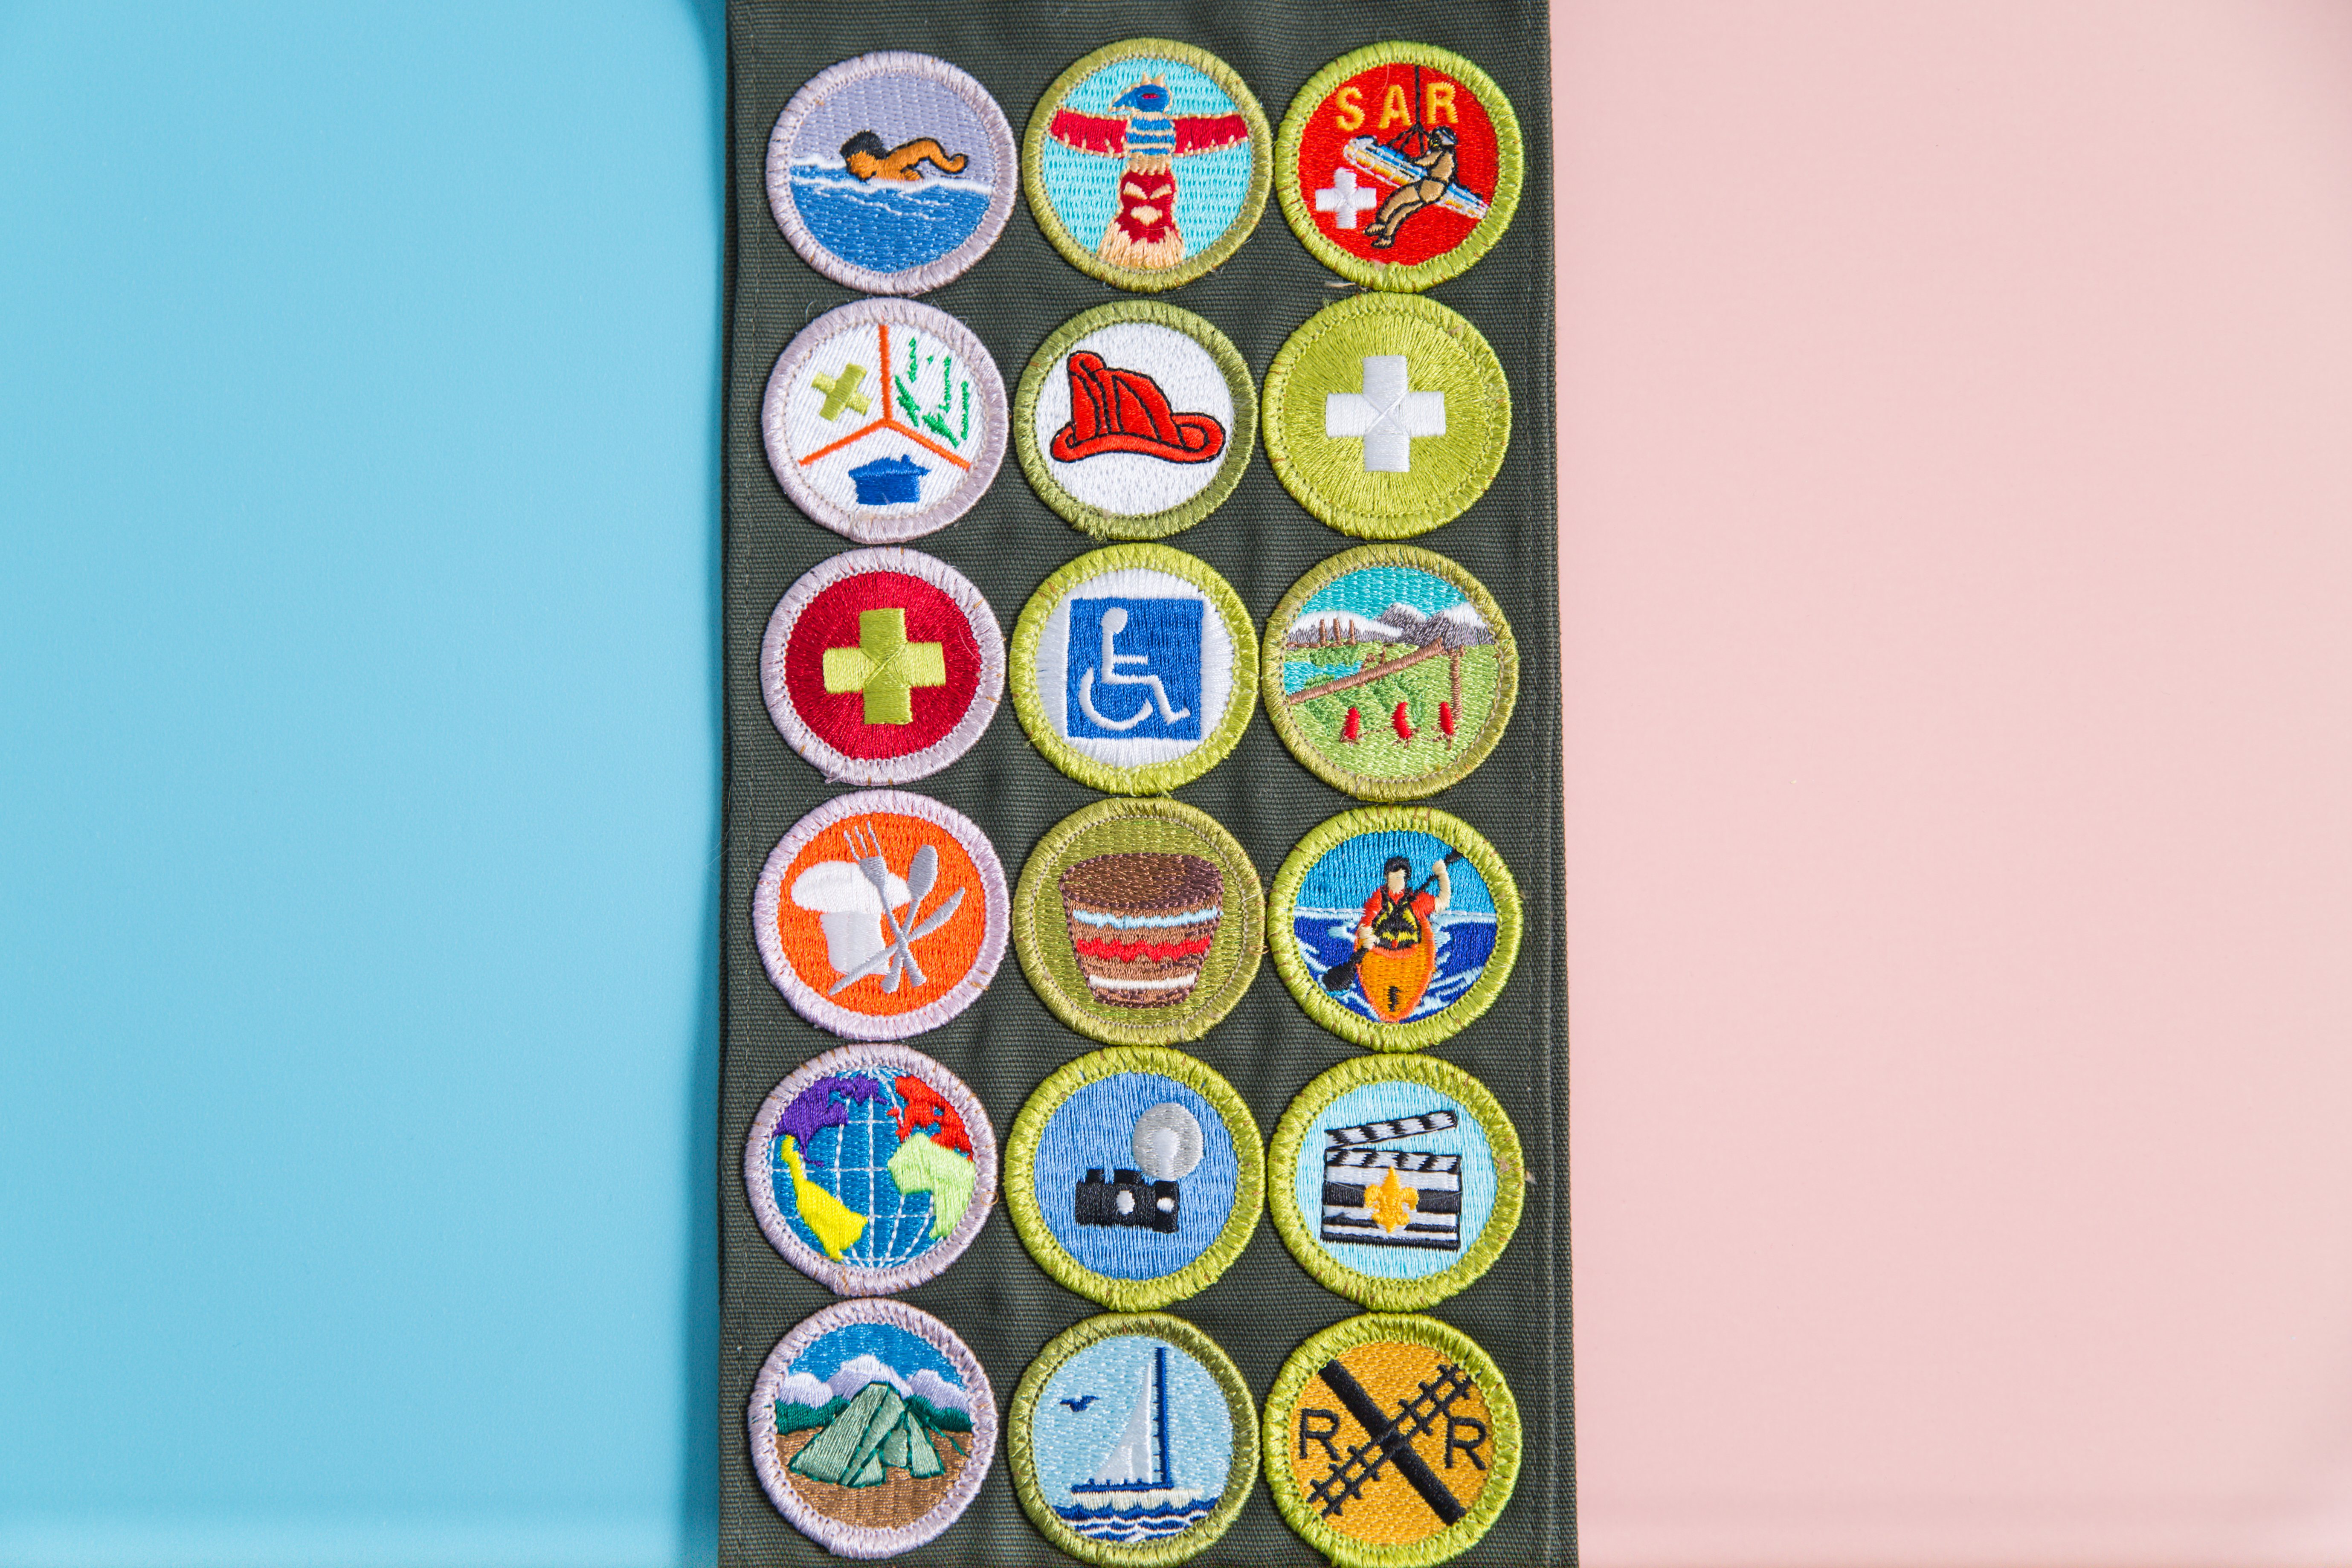 Boy Scouts of America (BSA) merit badge sash on pink and blue background as BSA welcomes girls to join scouting. SHUTTERSTOCK/ Amy Kerkemeyer